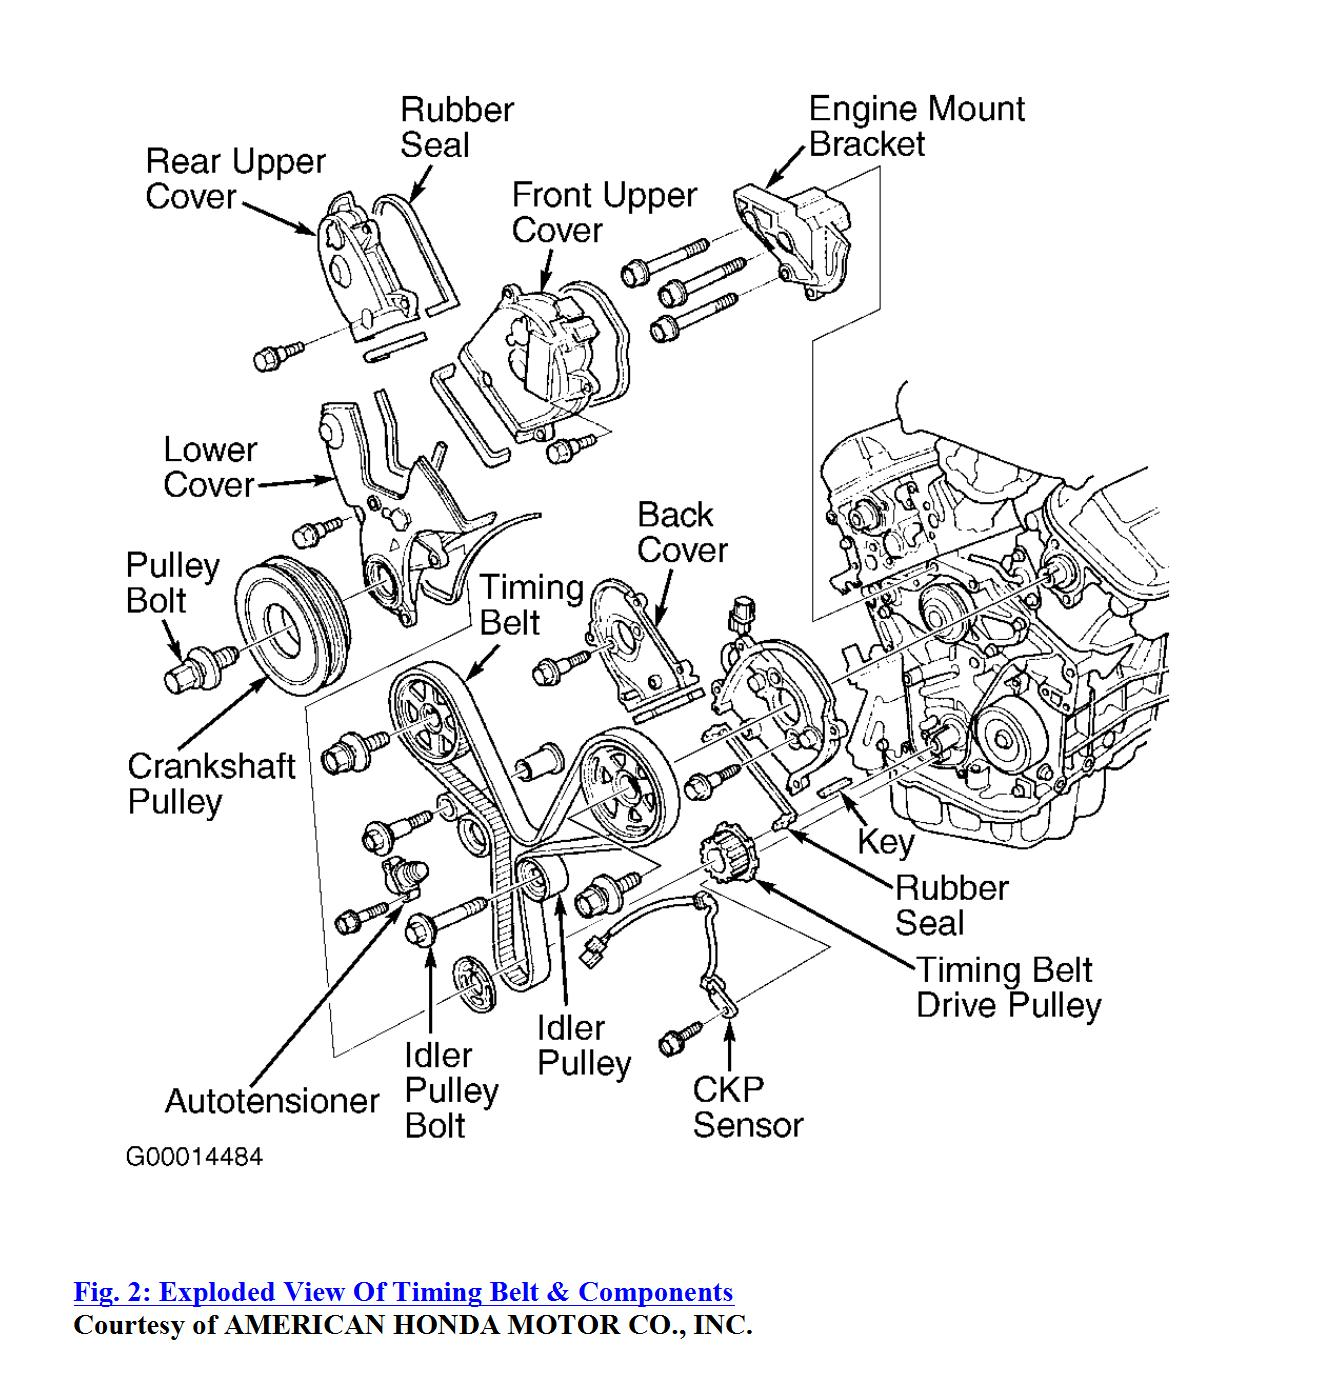 2008 Acura Rdx Fuse Box on 1994 Integra Fuse Box Diagram